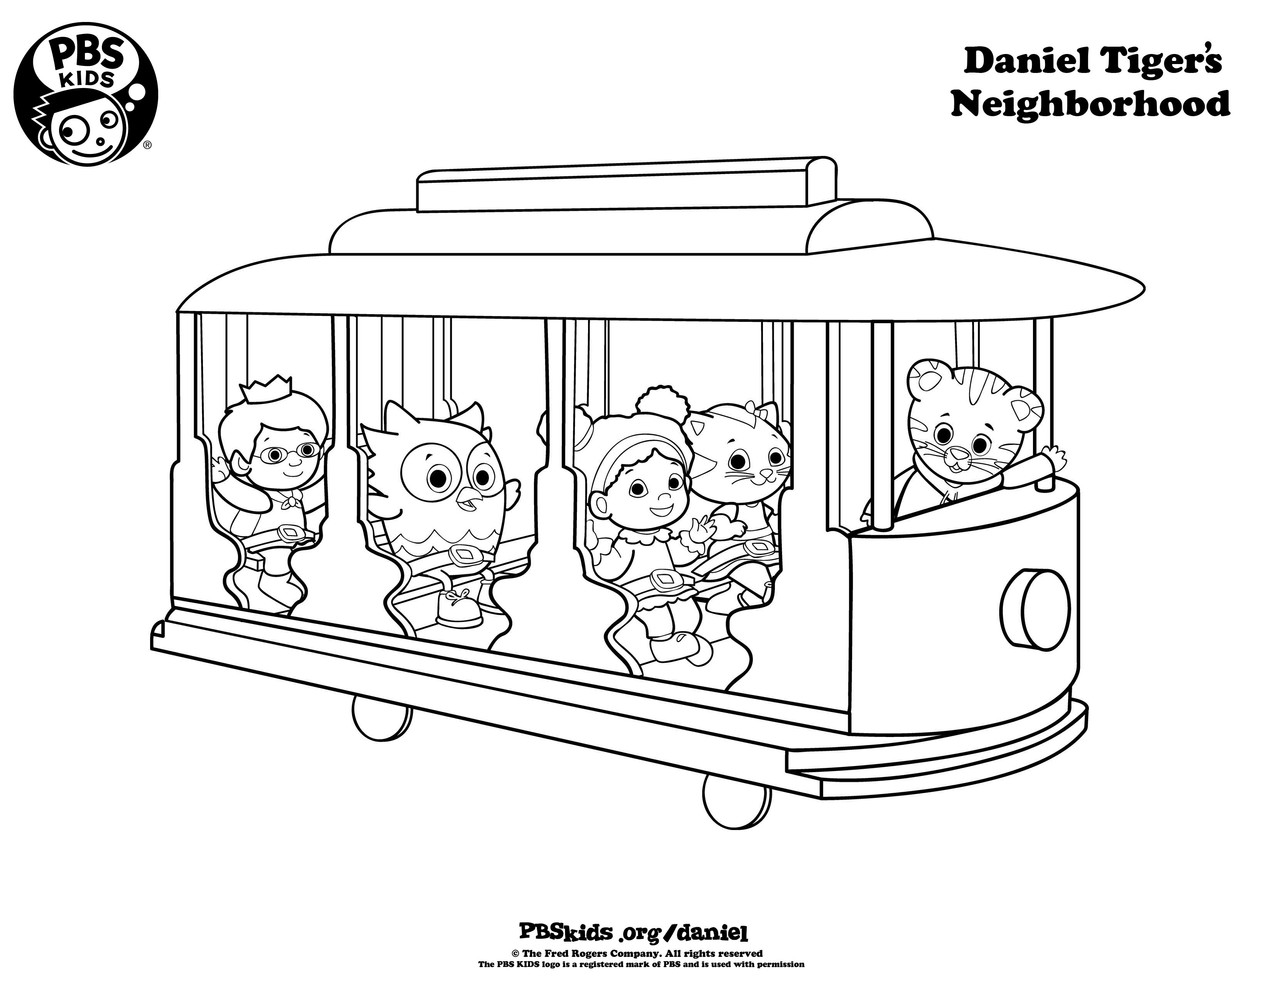 Coloring pages_Daniel Tiger and Friends_